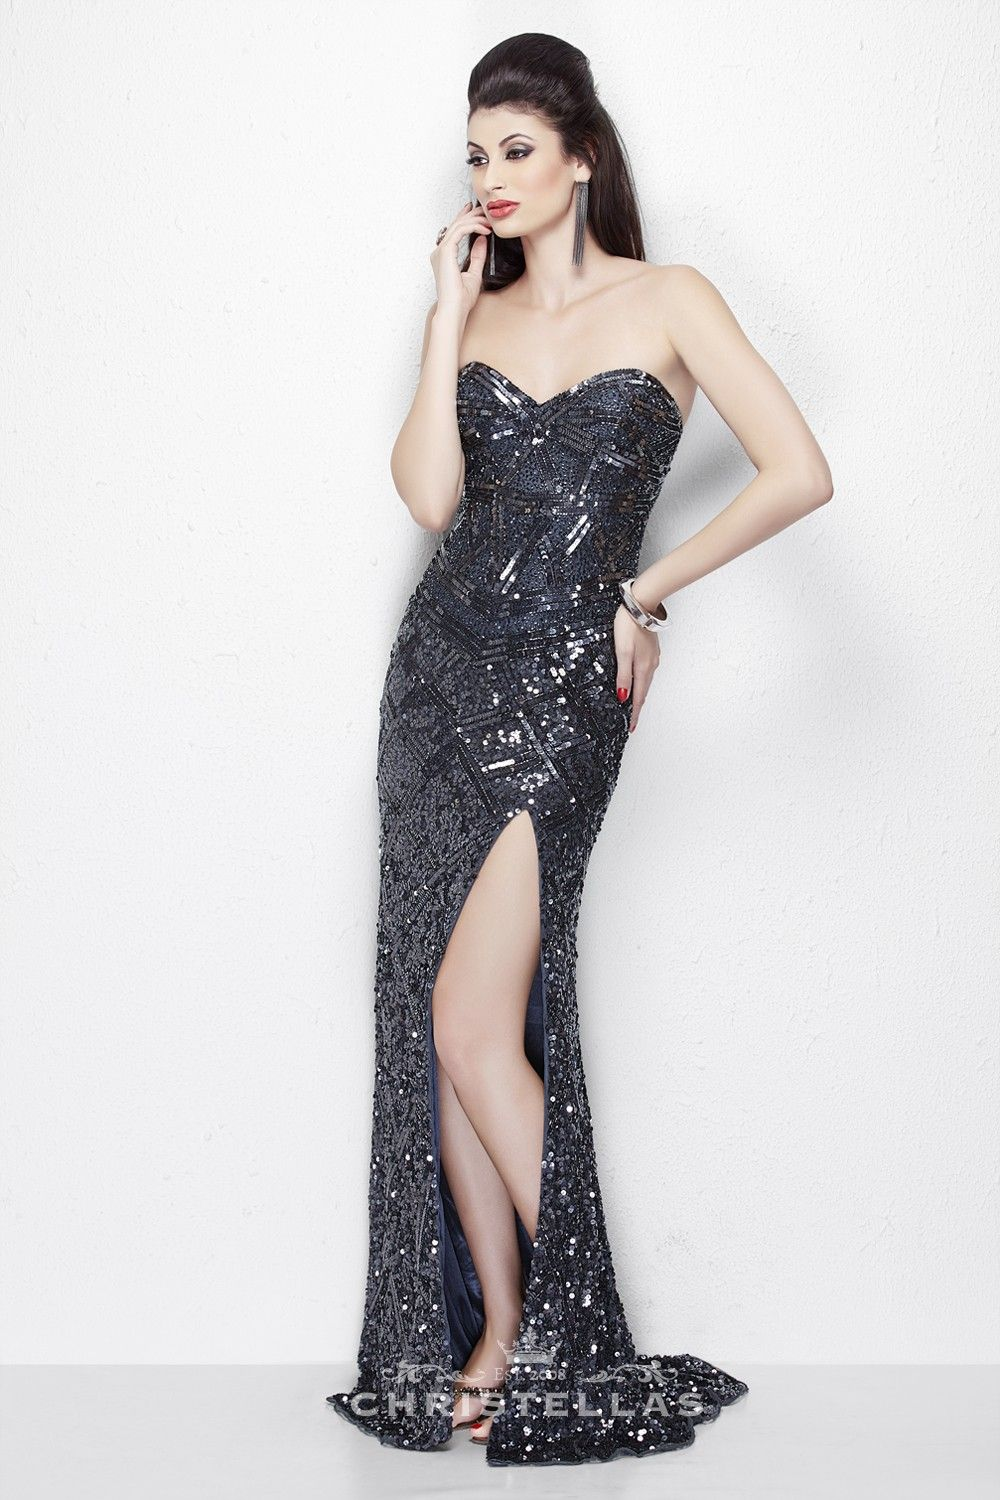 Channel your inner gatsby goddess in this curvehugging metallic